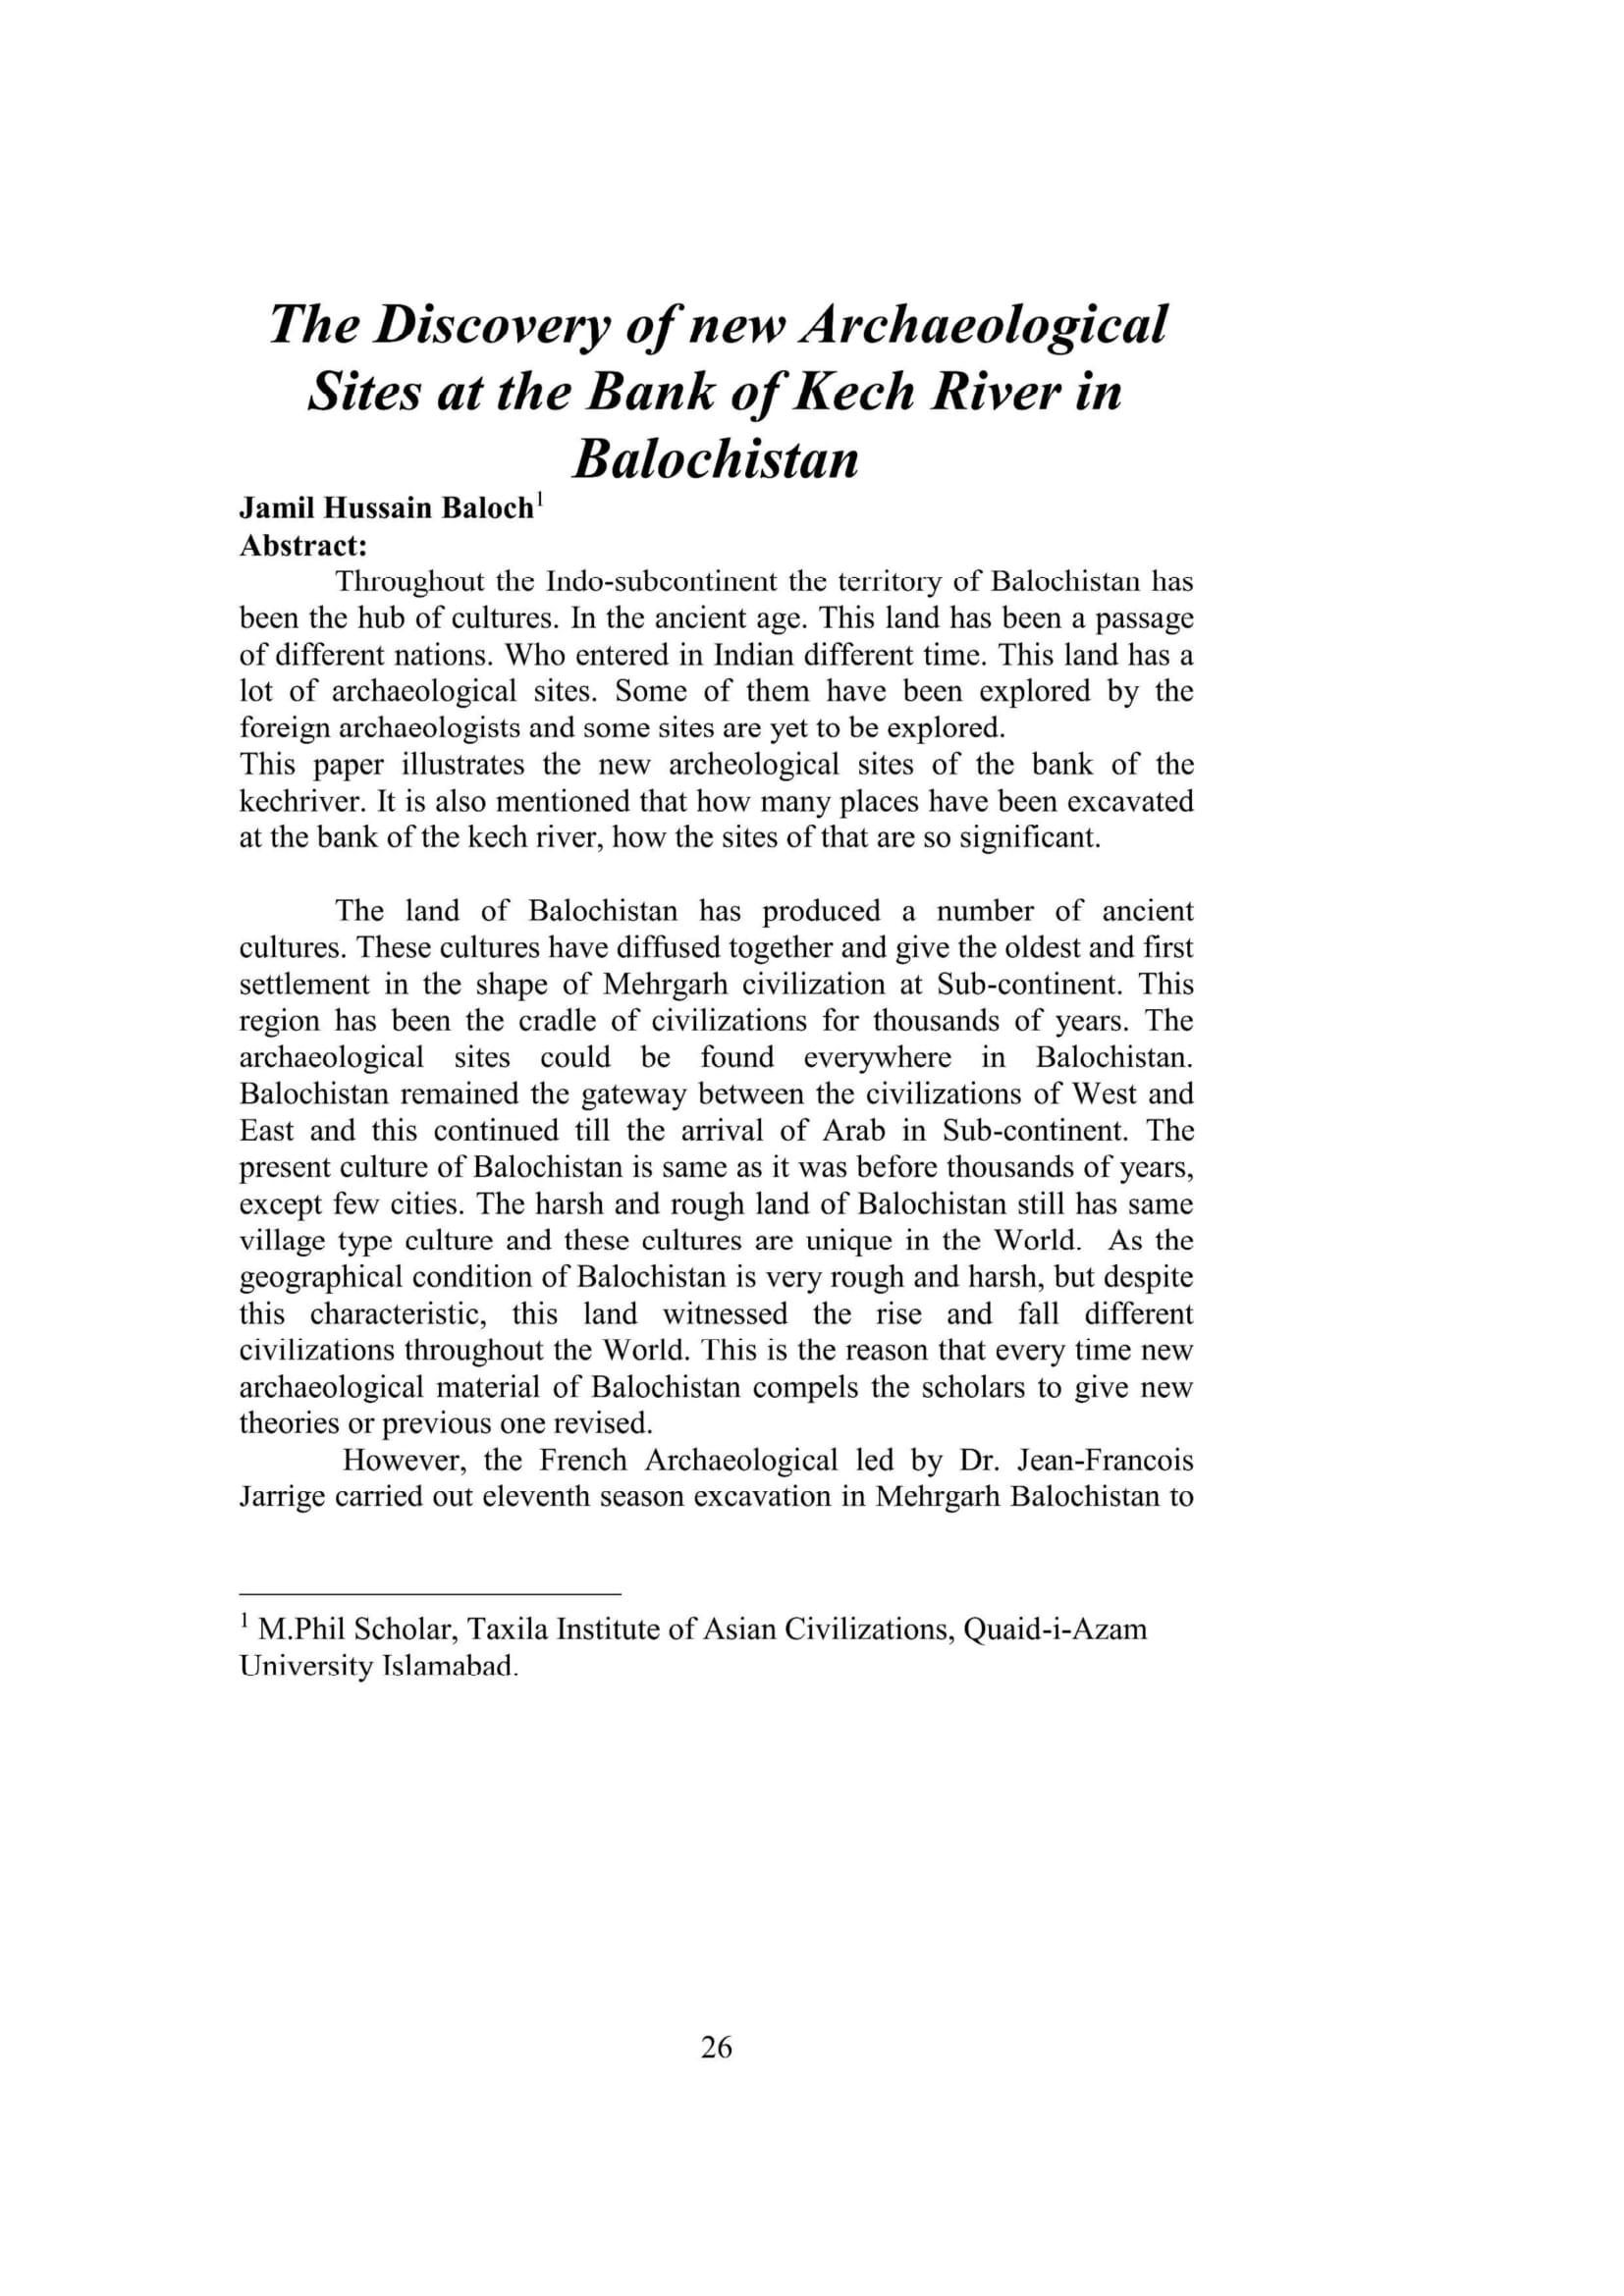 The Discovery of new Archaeological Sites at the Bank of Kech River in Balochistan